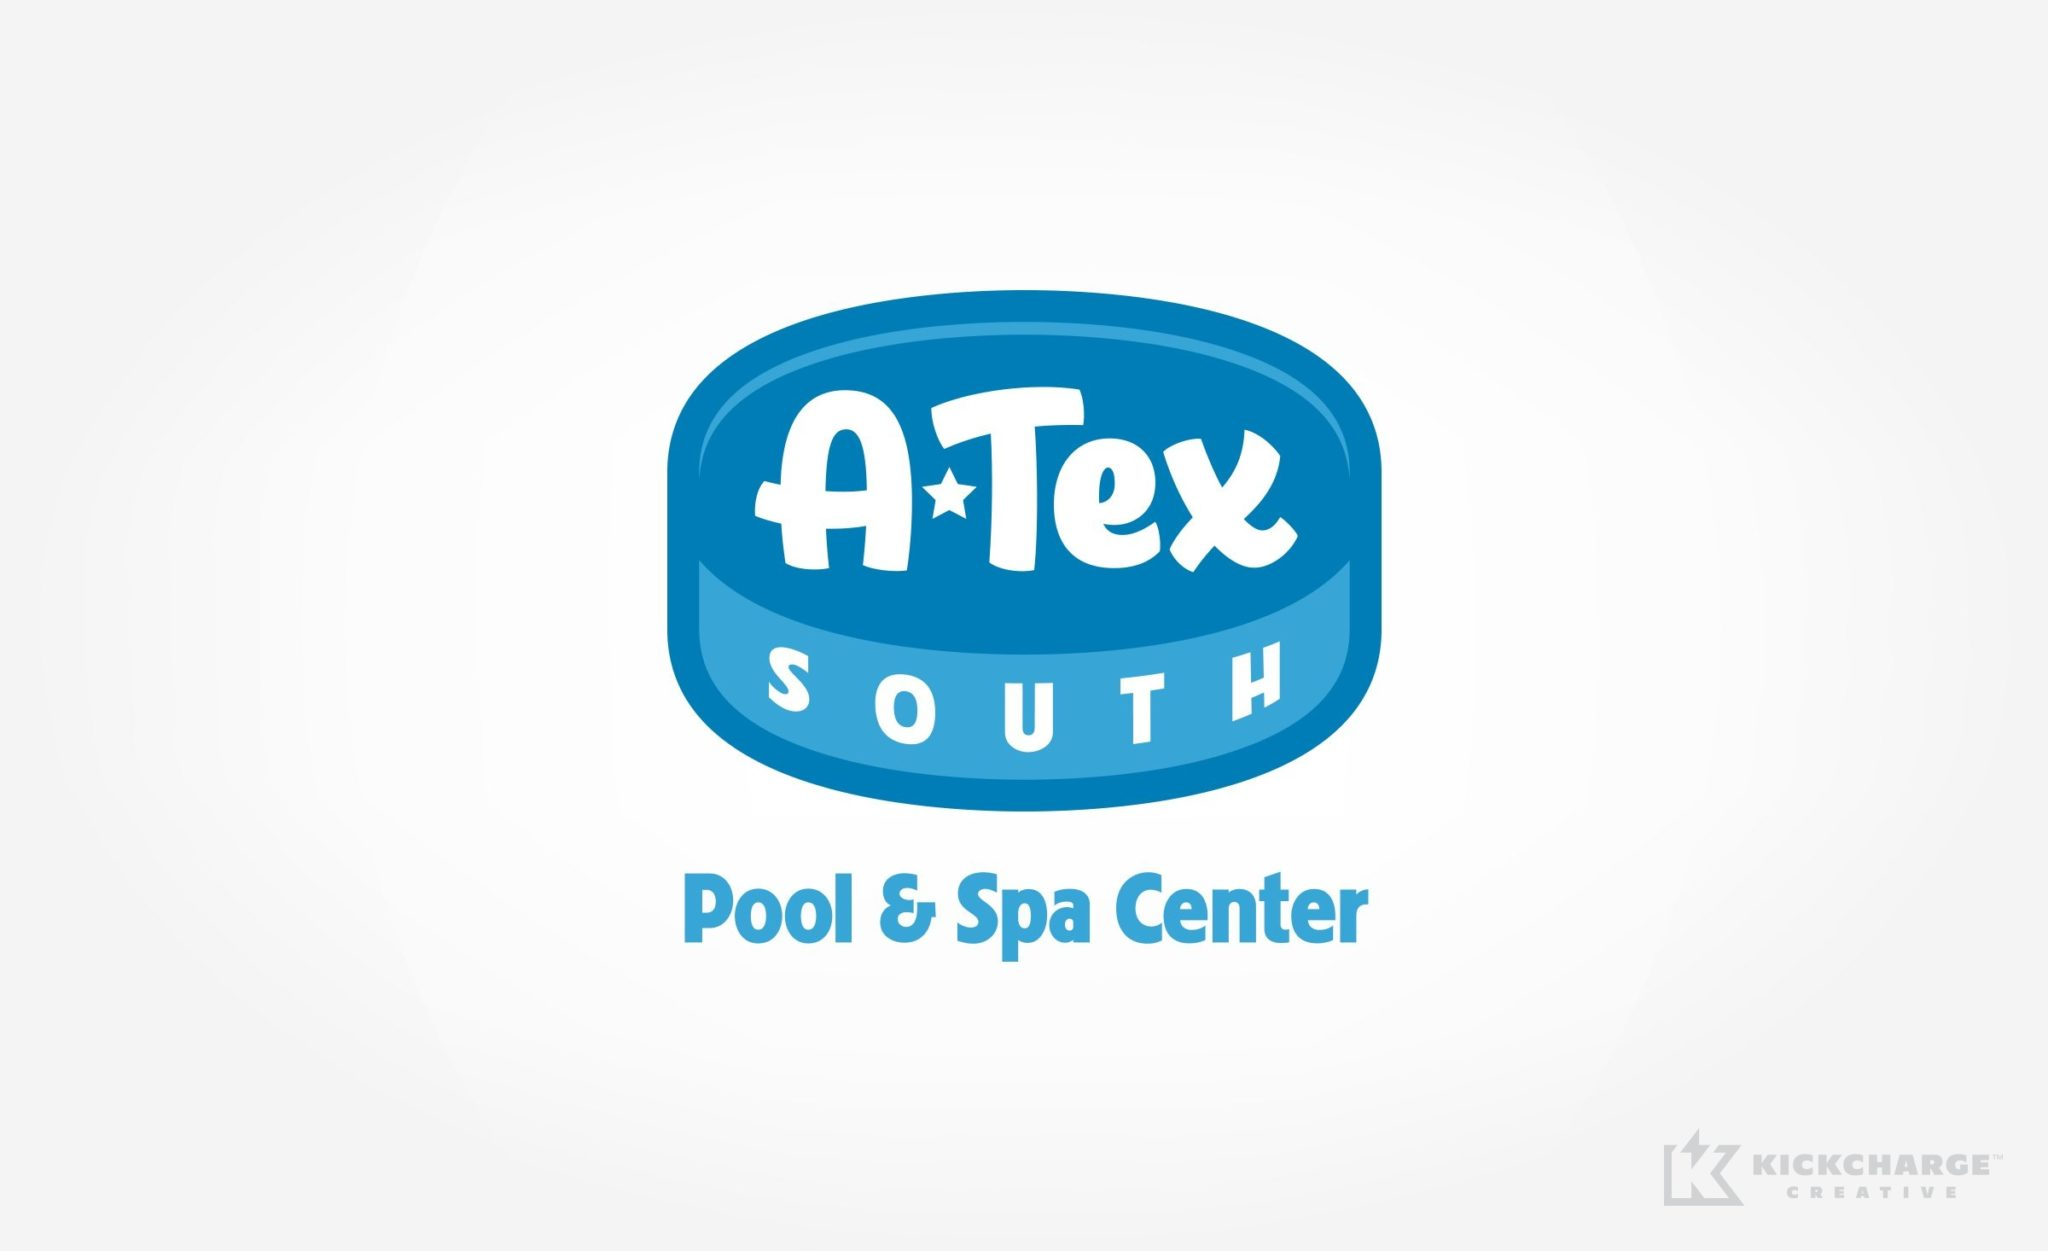 Logo for a pool and spa center.